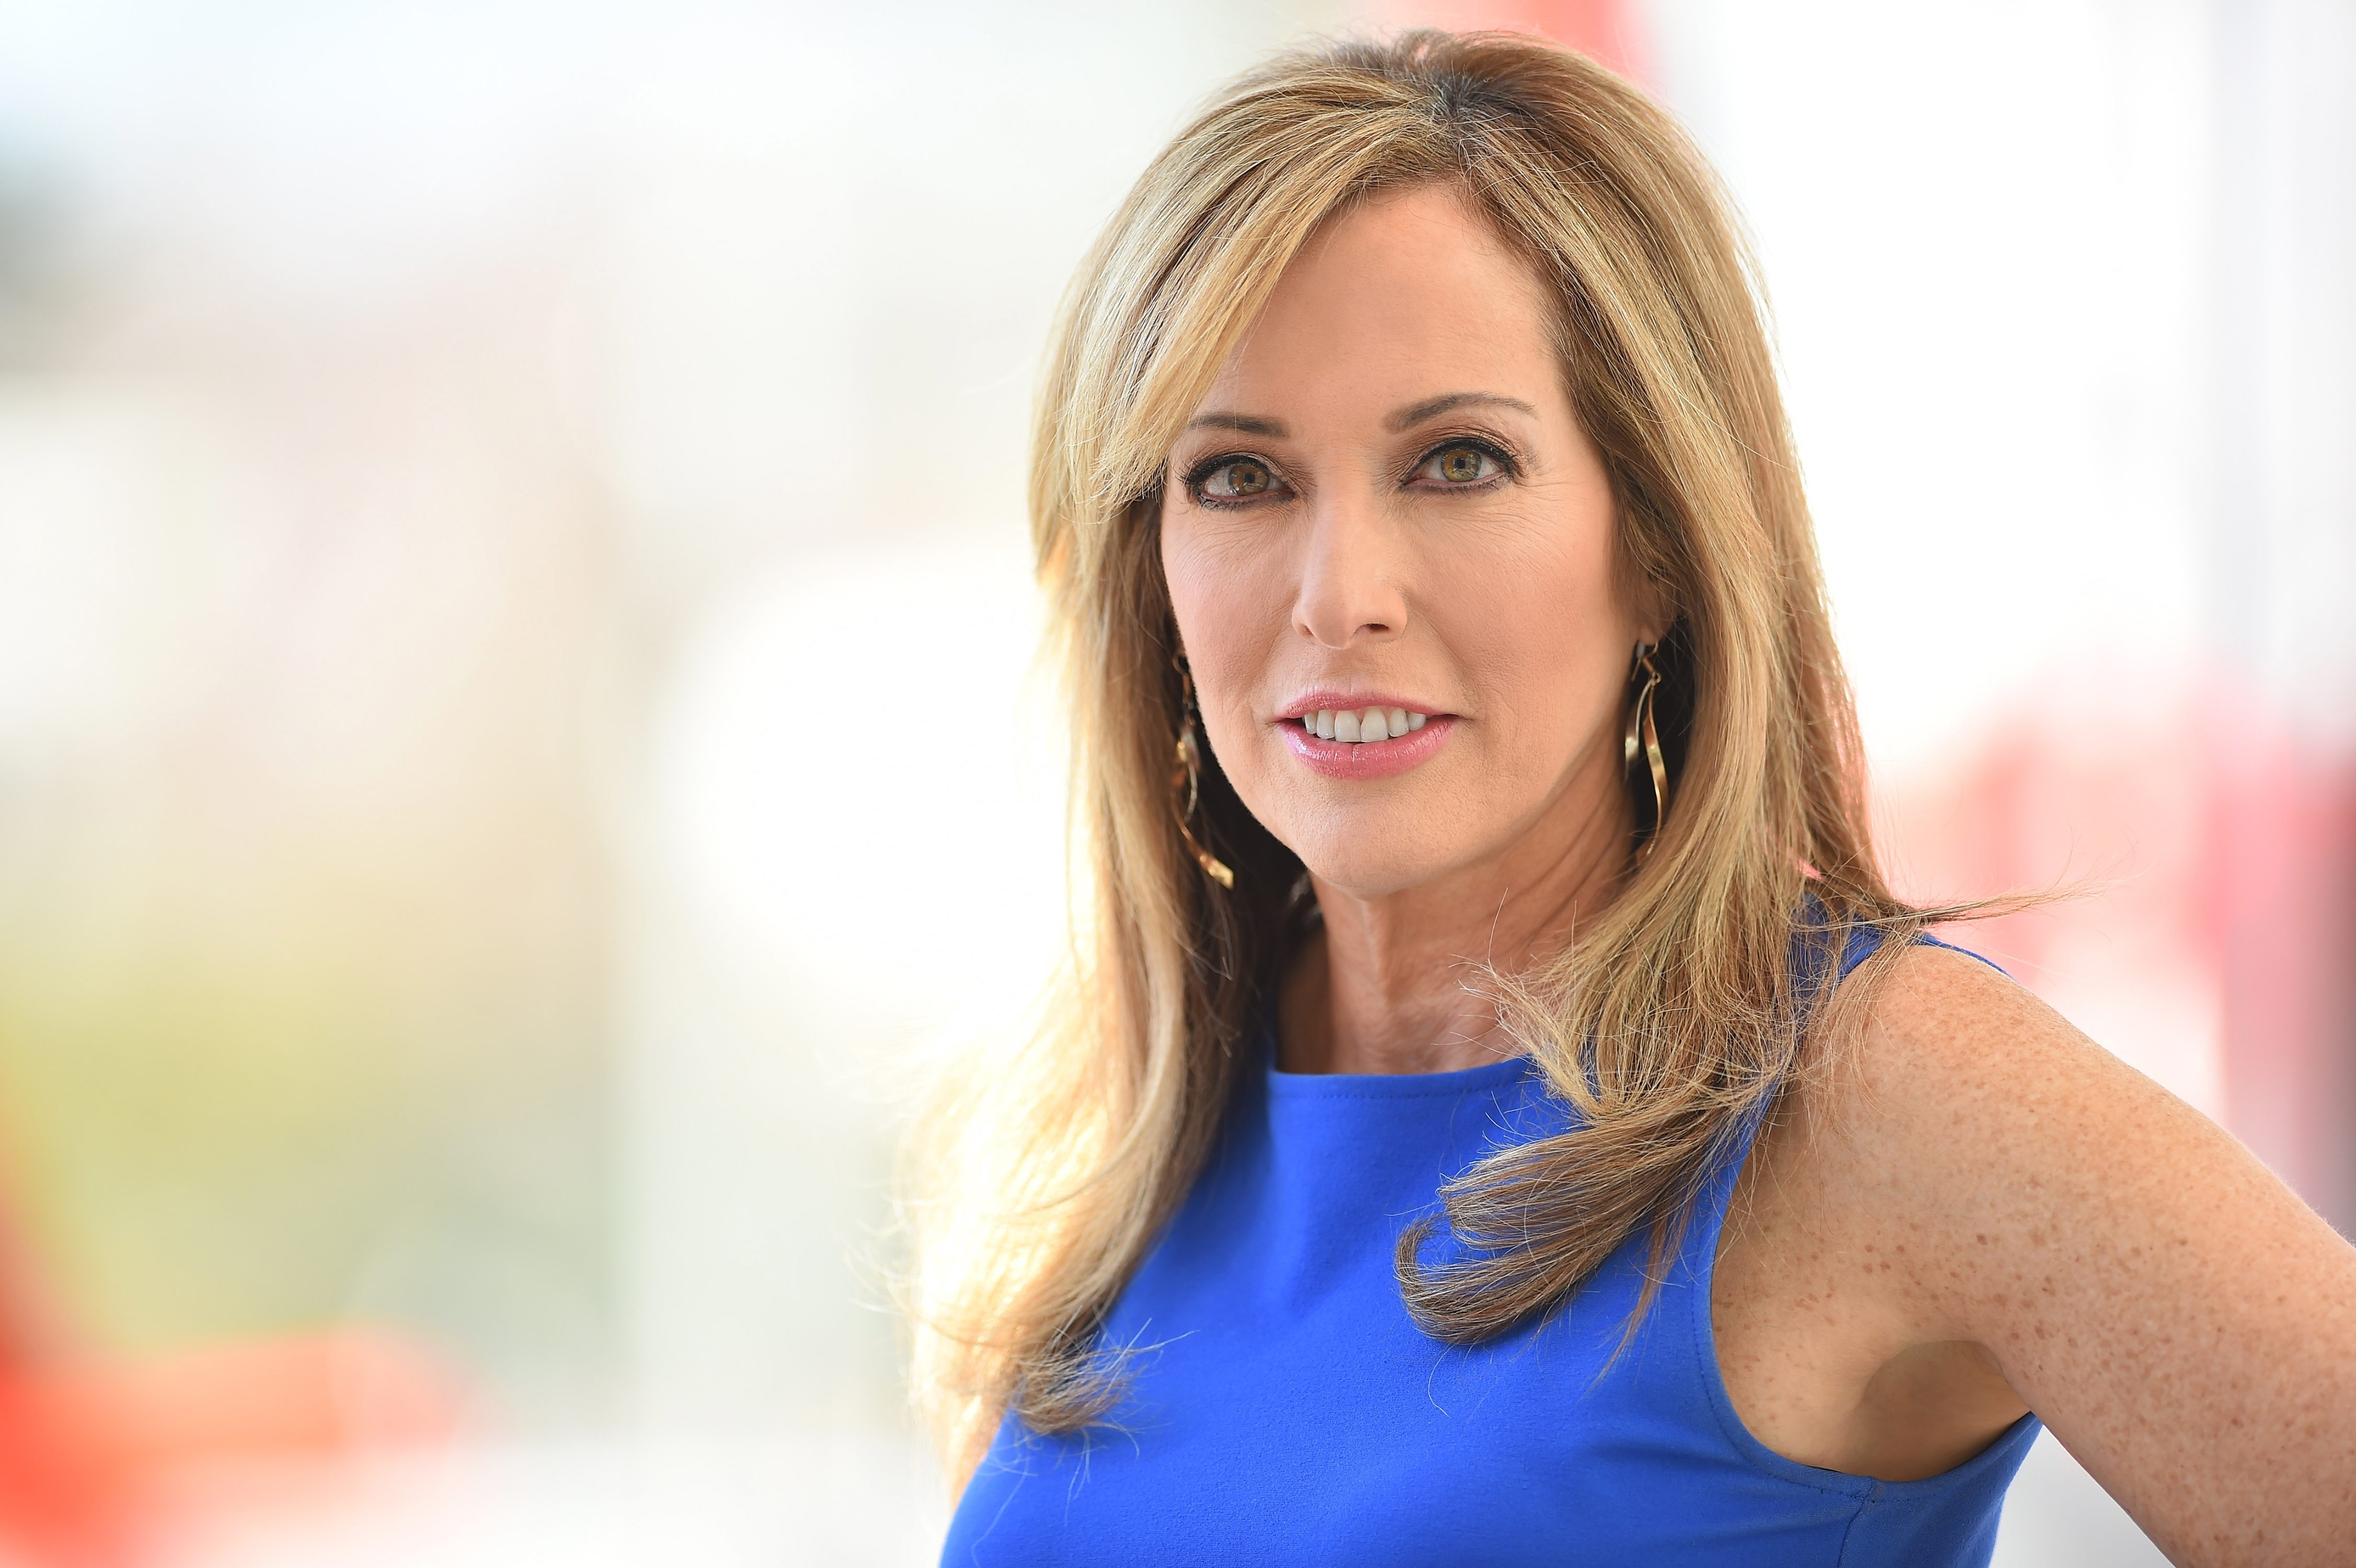 Linda Cohn went from a former hockey goalie at SUNY Oswego to ESPN's most durable SportsCenter anchor.